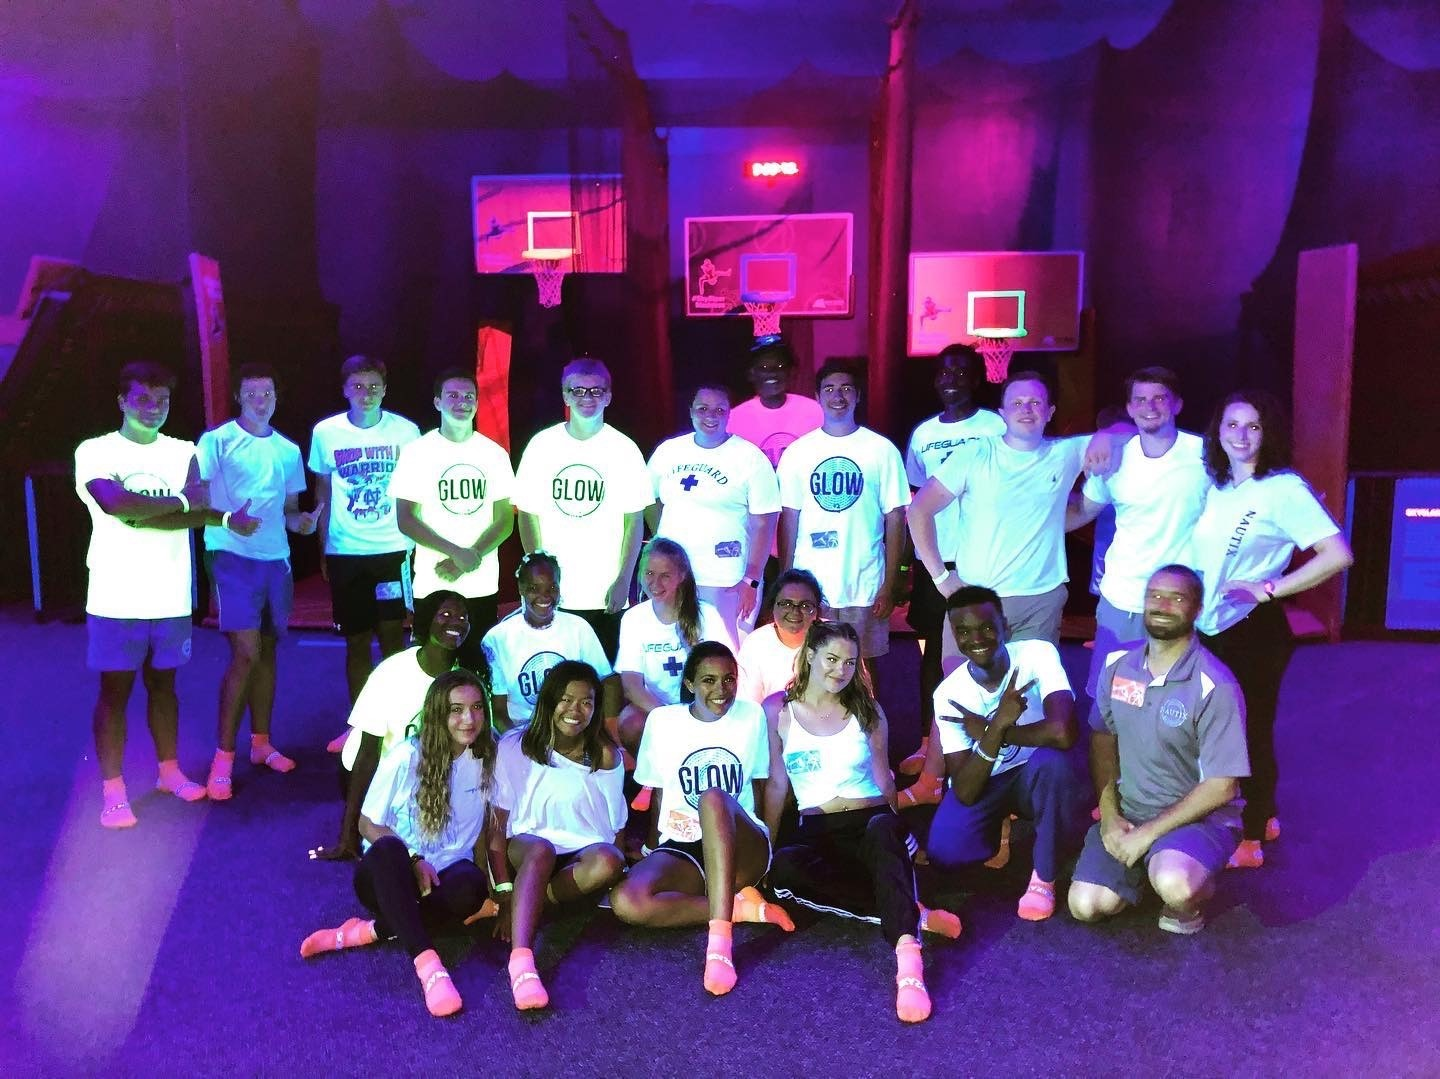 Sky Zone Group